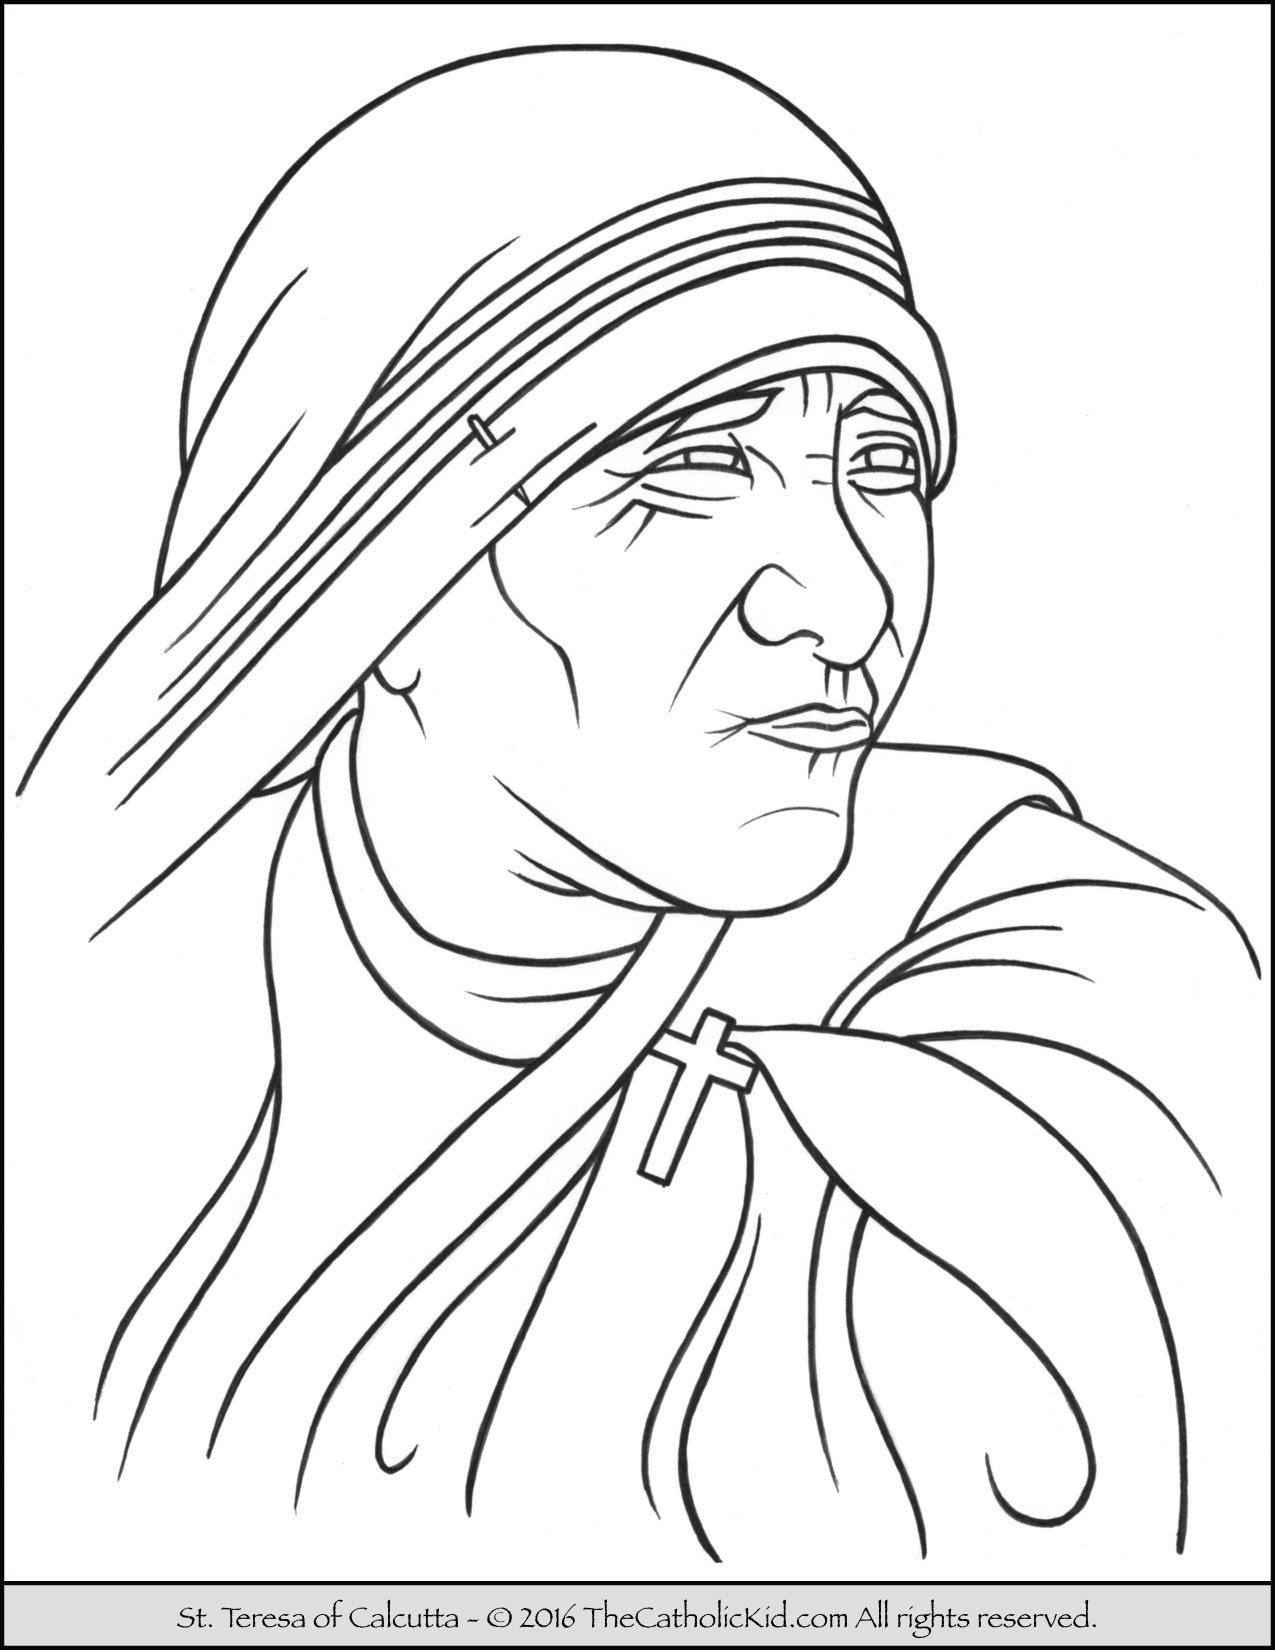 Saint Teresa of Calcutta Coloring Page - TheCatholicKid.com